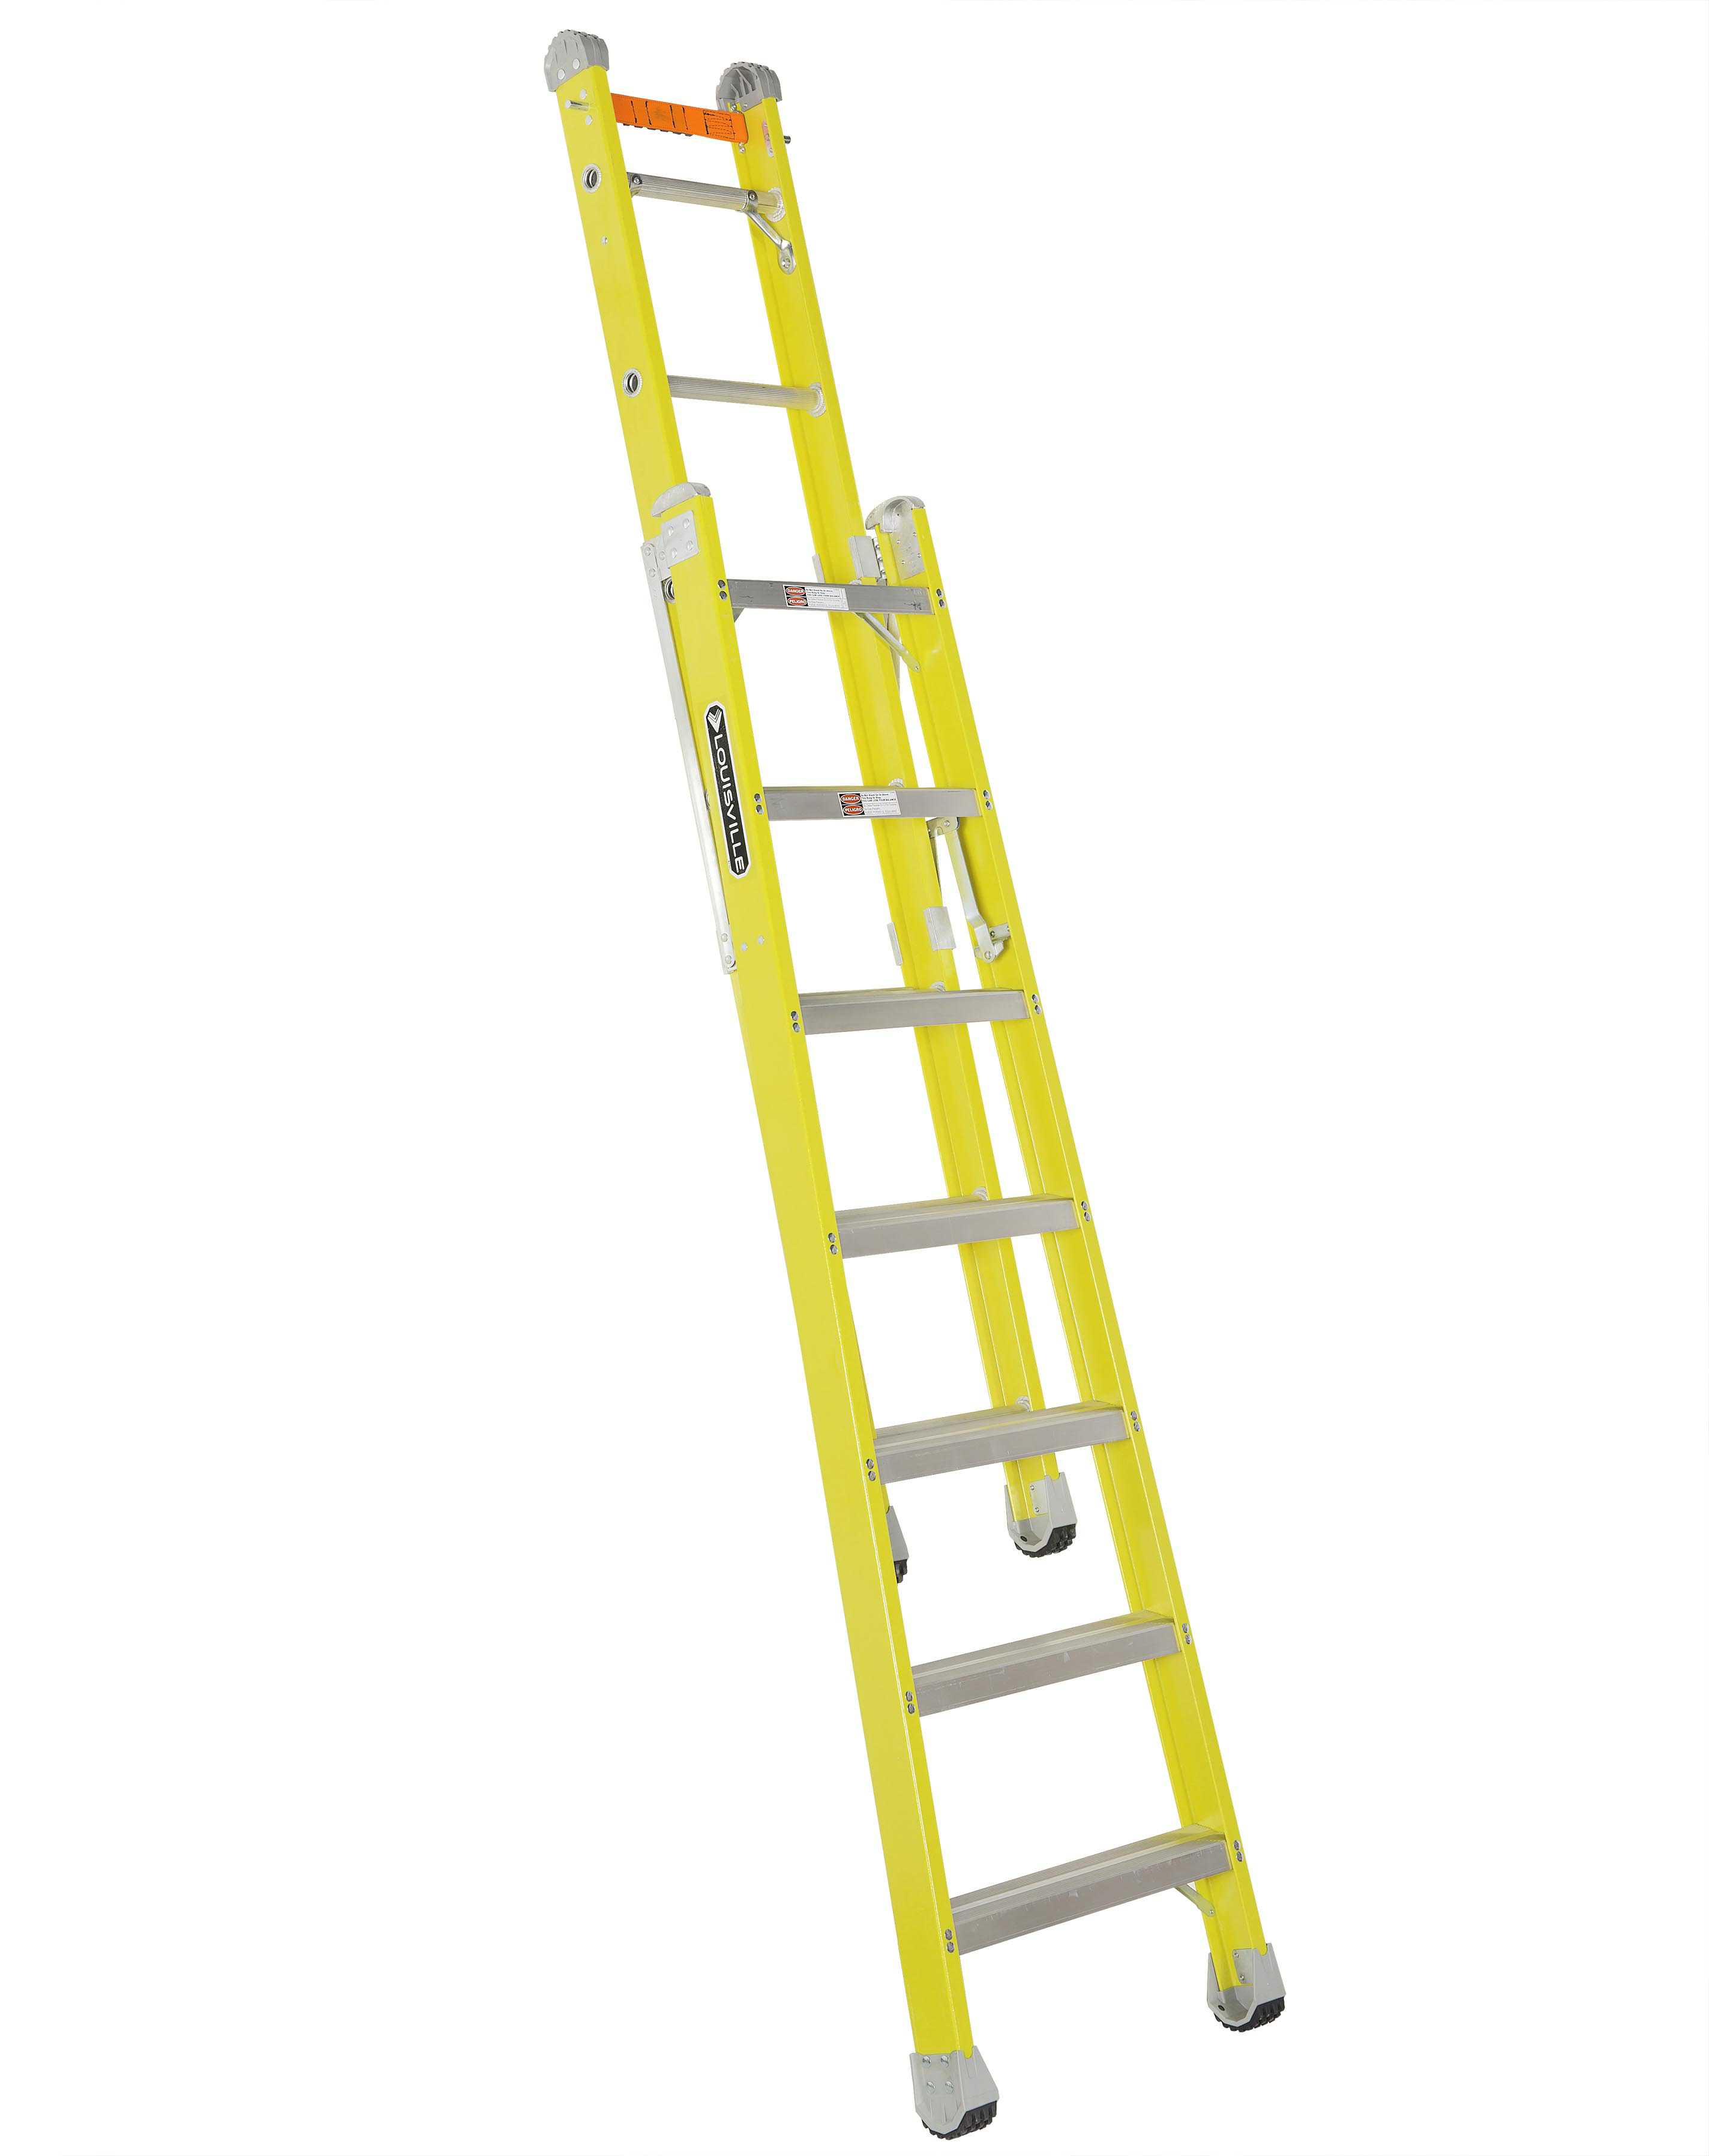 Louisville Ladder FXC1207 7 ft Fiberglass Combination Ladder, Type IAA, 375 Lbs Load Capacity